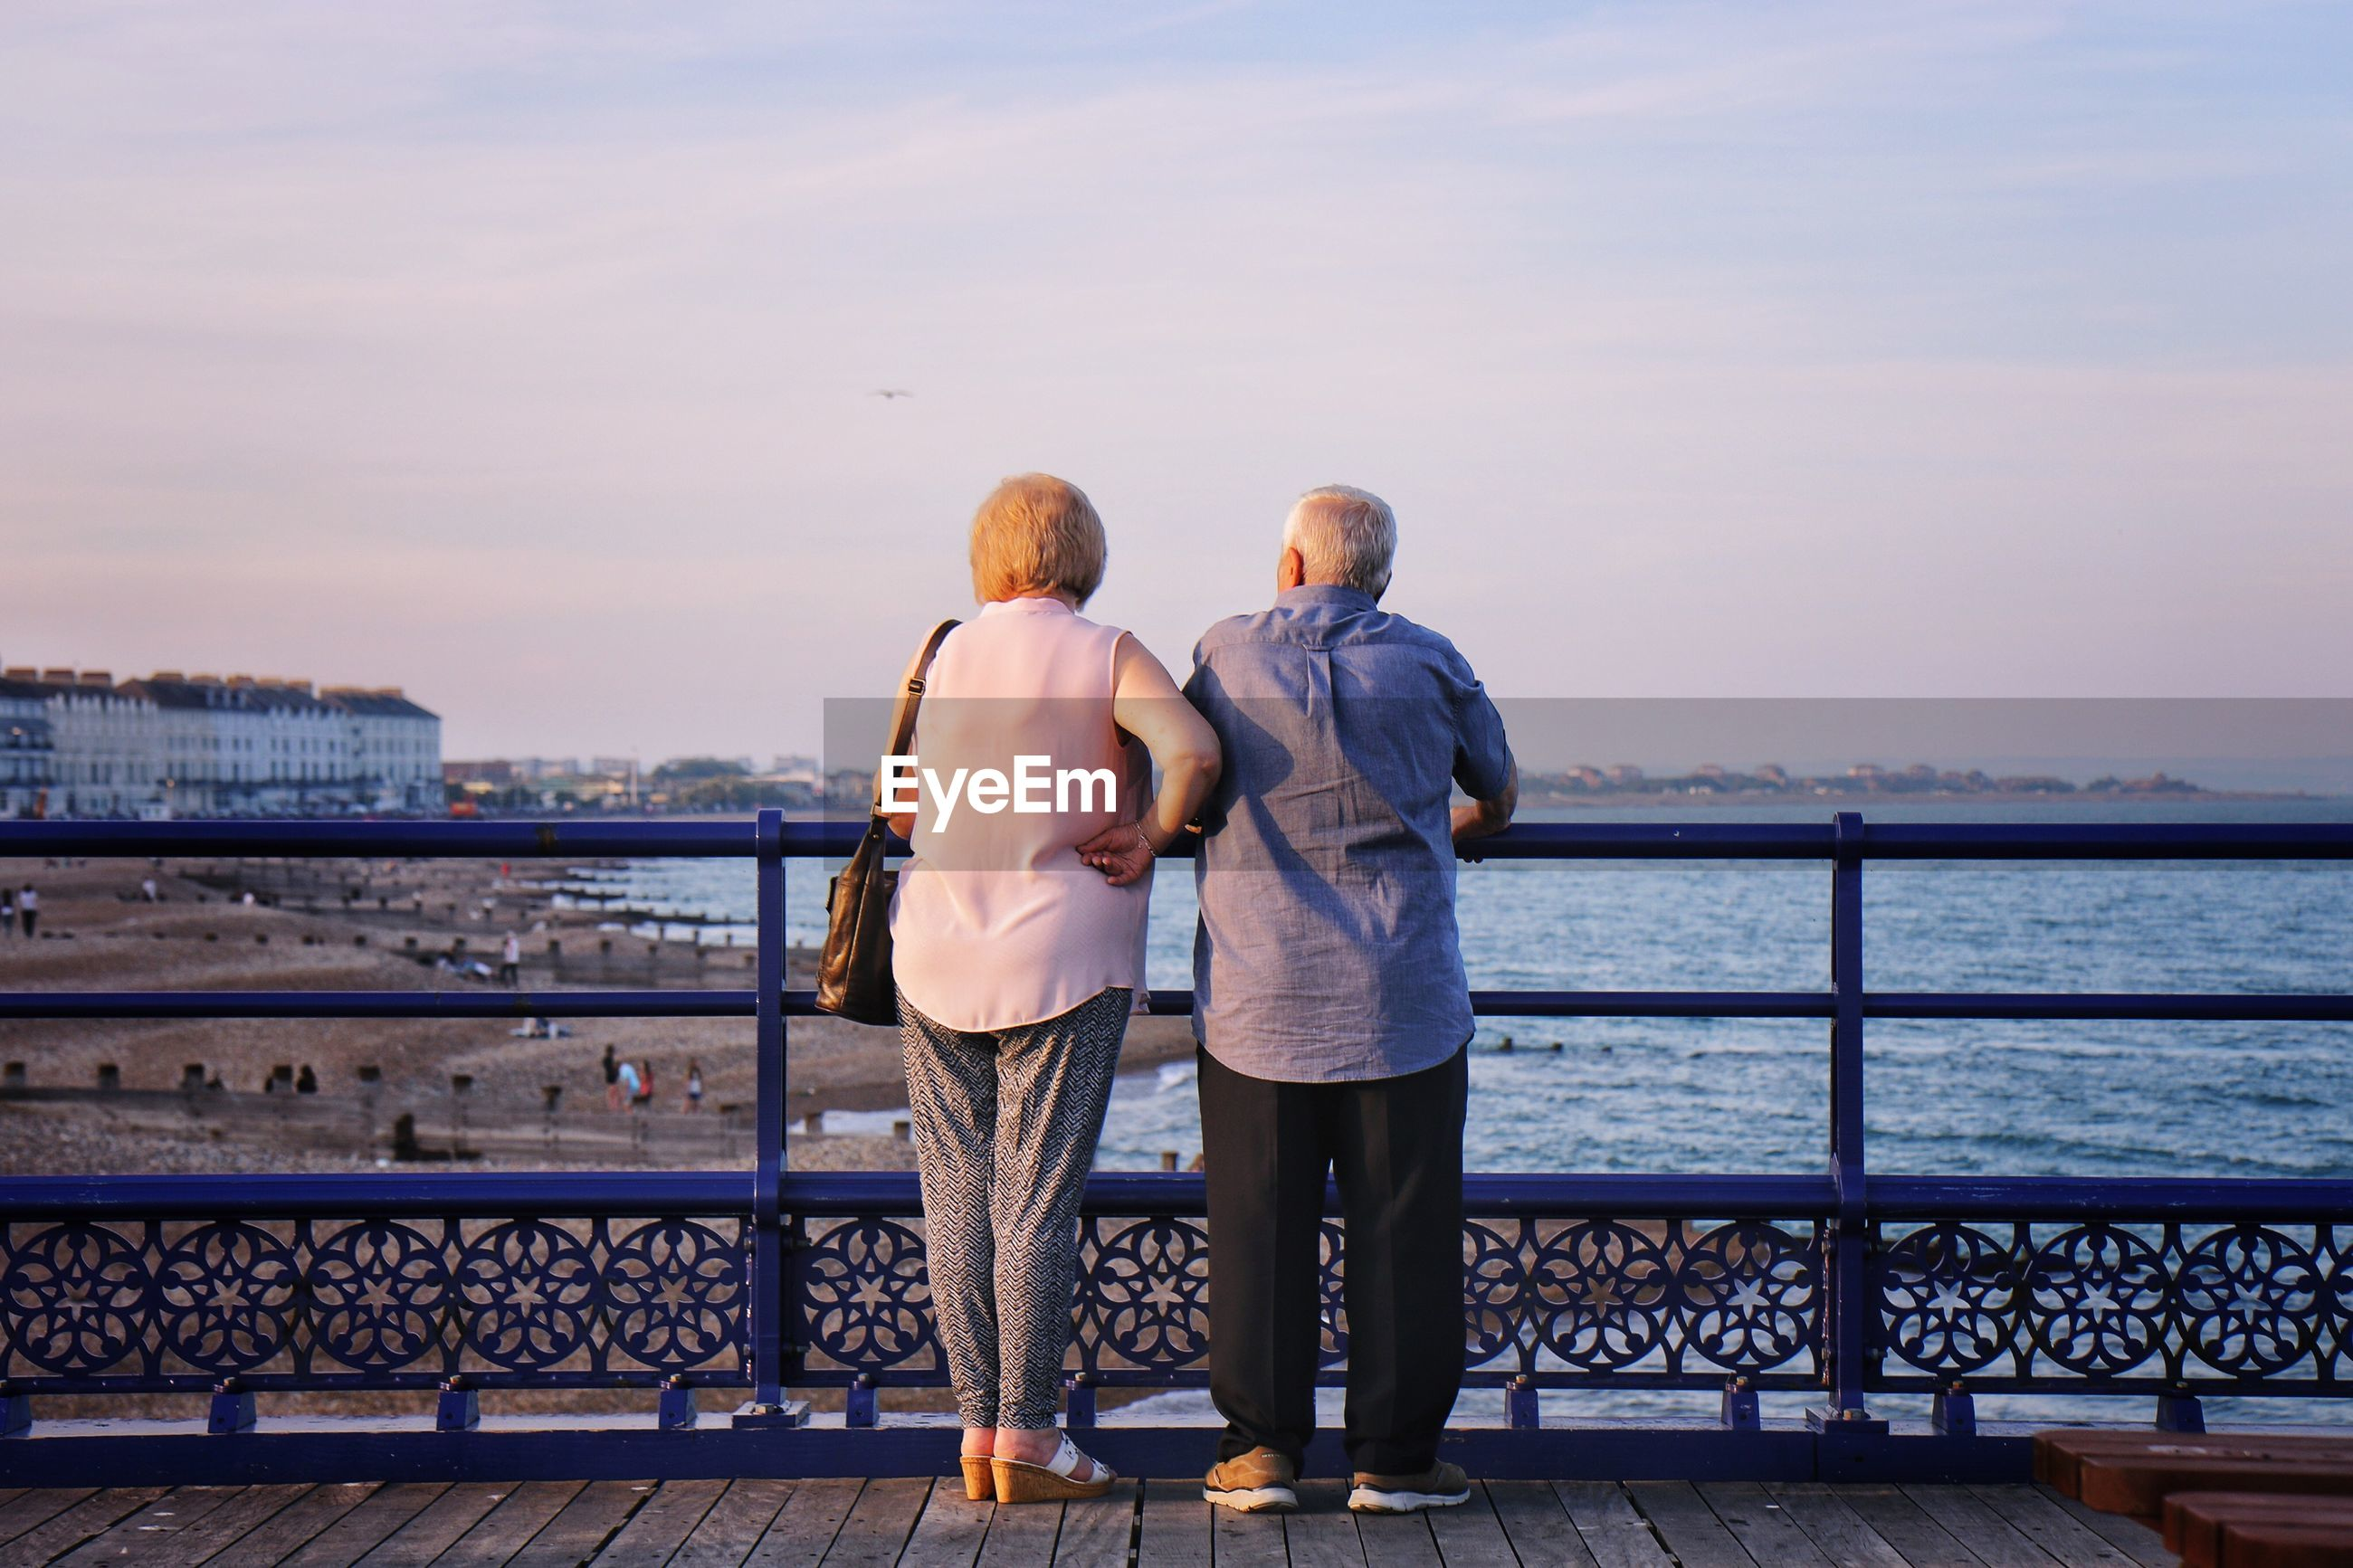 Rear view of couple looking at sea while standing by railing against sky during sunset